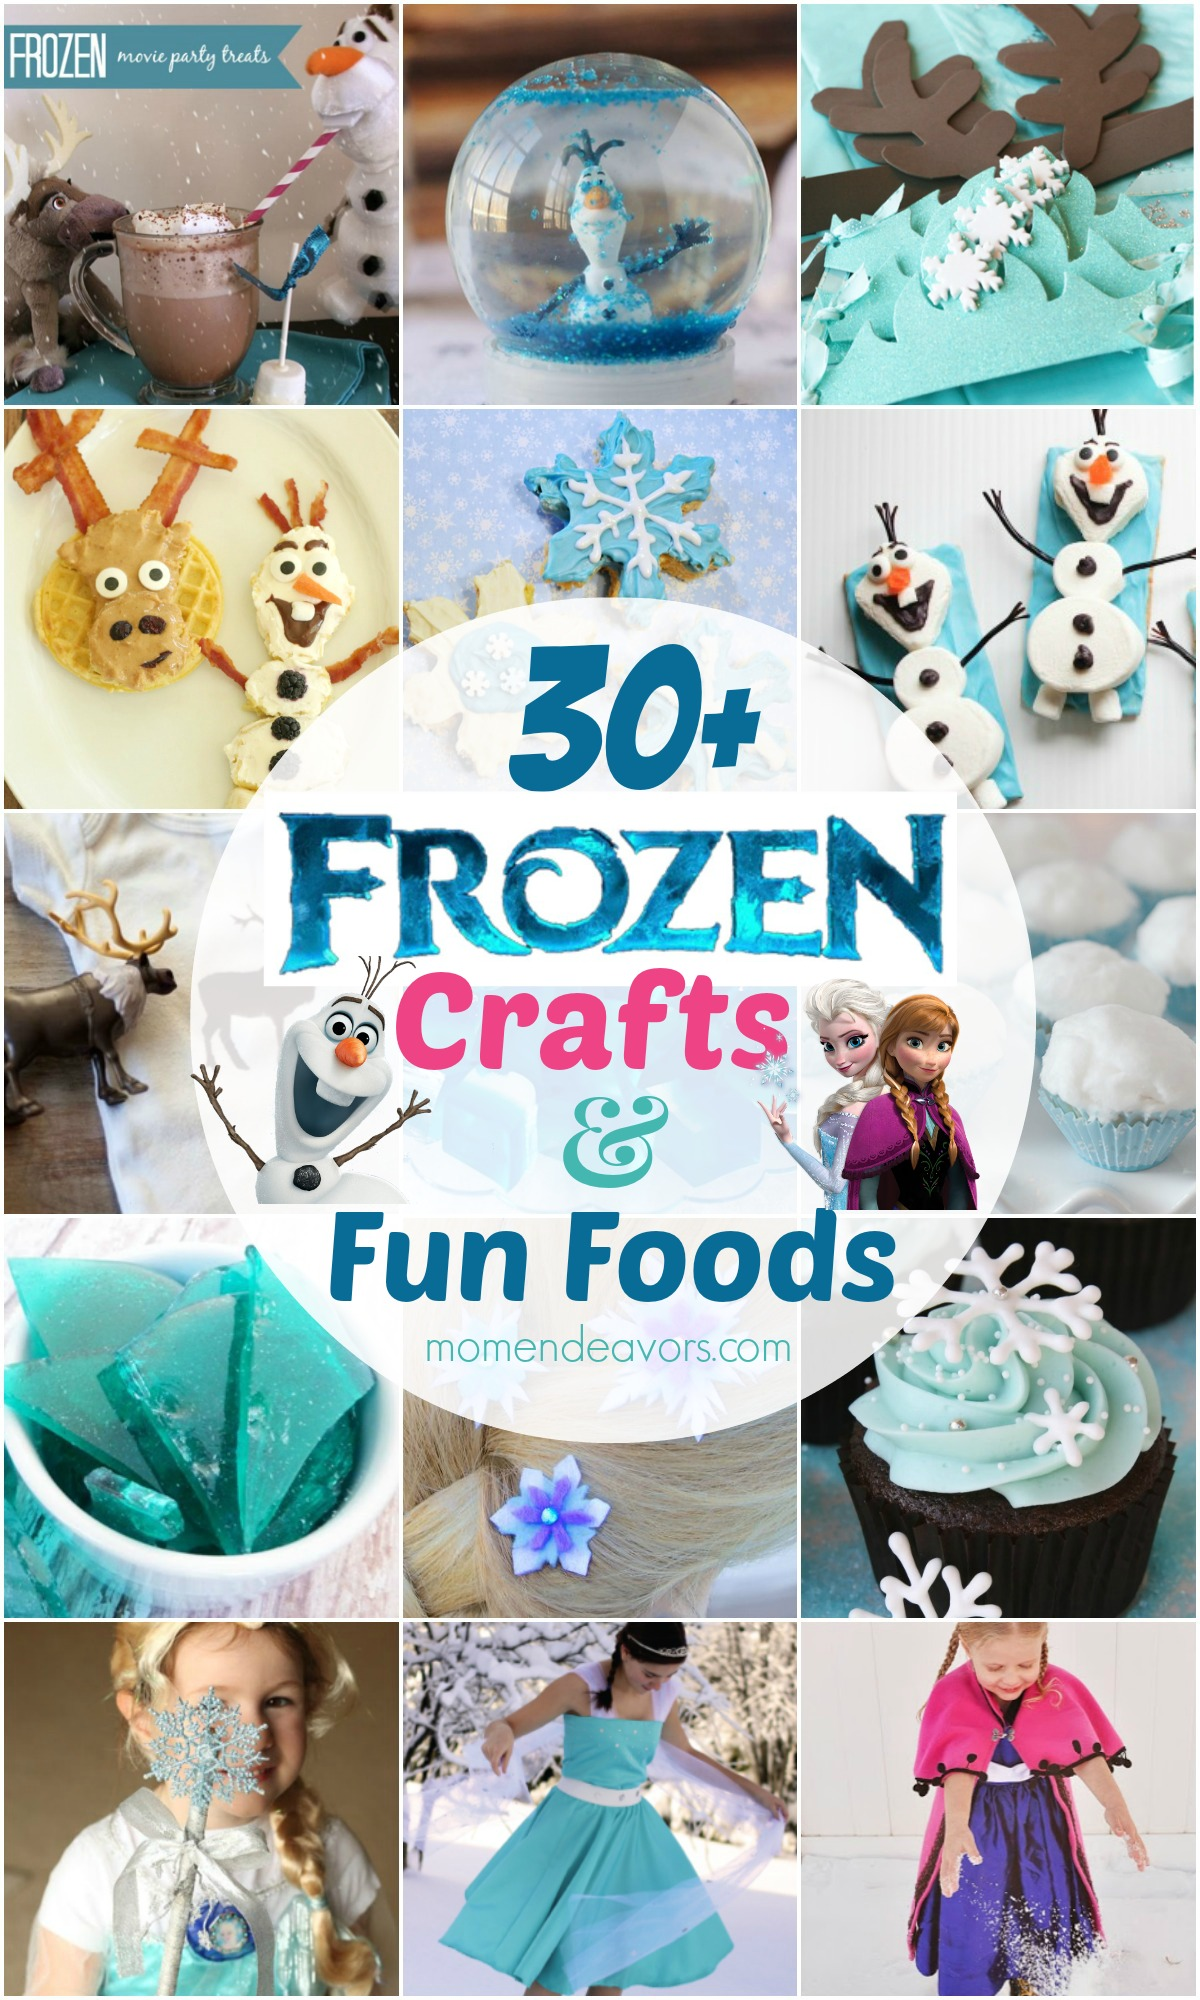 30 Disney Frozen Crafts Fun Food Ideas